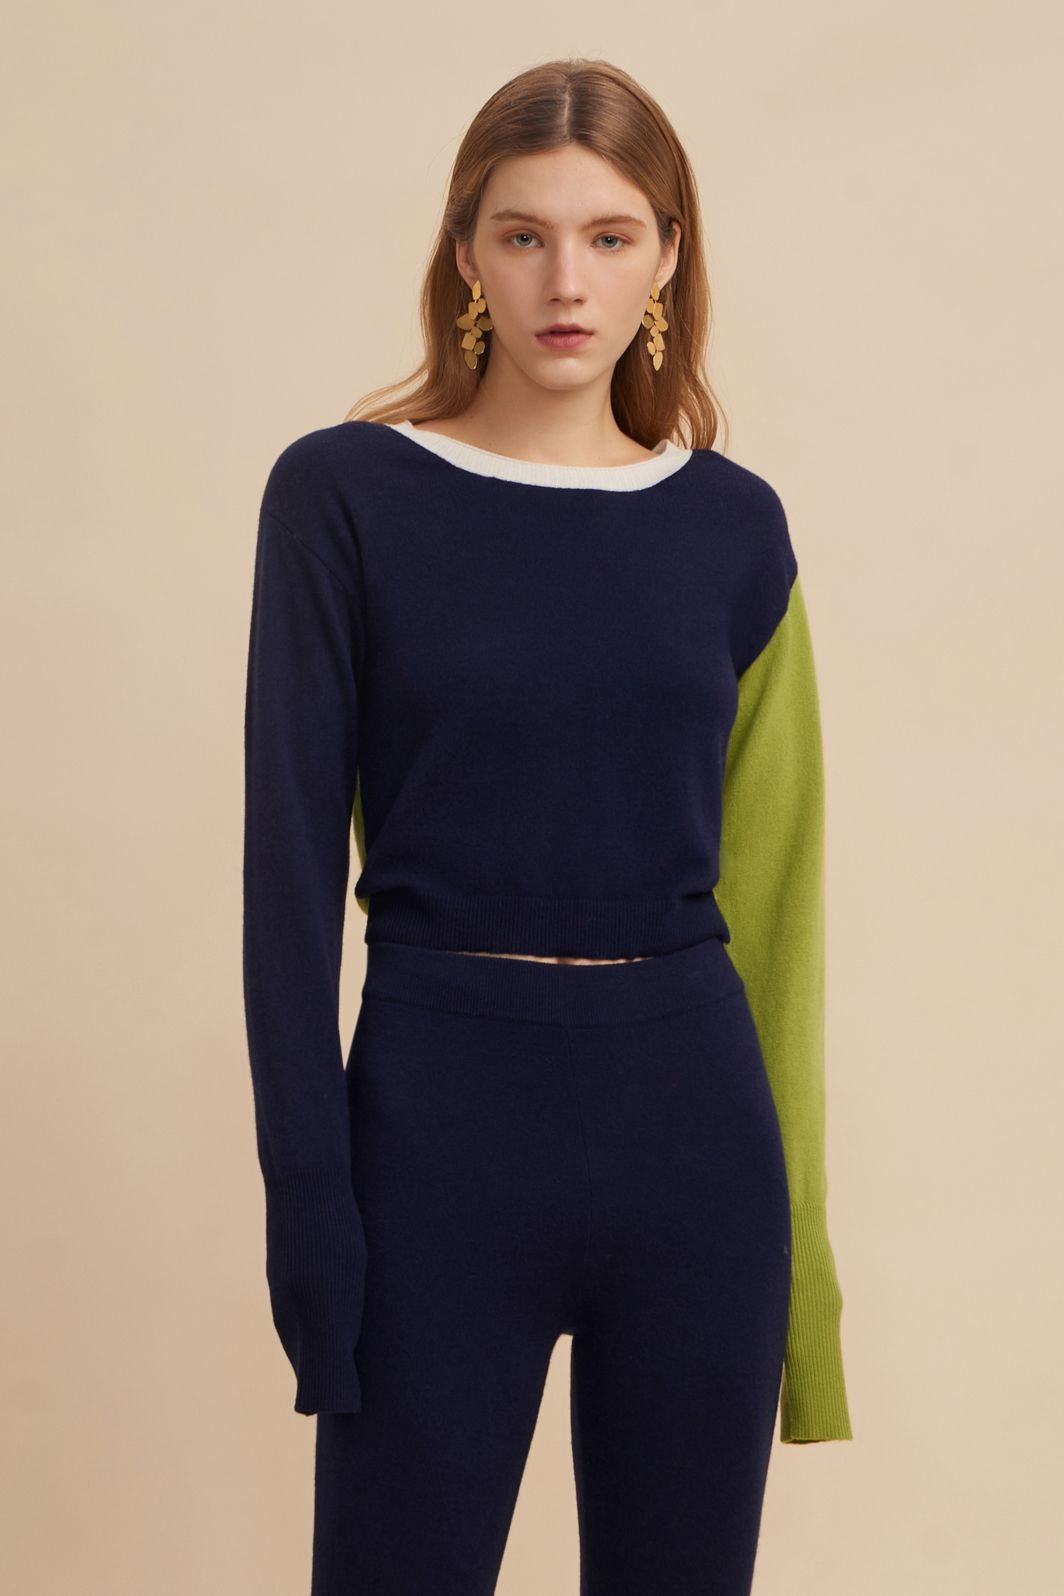 cashmere sweater, cashmere wool, cashmere wool sweater, color block sweater, color block crop top, color block top, navy sweater, navy cashmere sweater, navy sweater women, navy sweater outfit, cropped cashmere sweater, cropped sweater, cropped sweater top, cropped knit sweater, navy cashmere sweaters, navy sweater women, crew neck cashmere sweater, crew neck sweater womens,